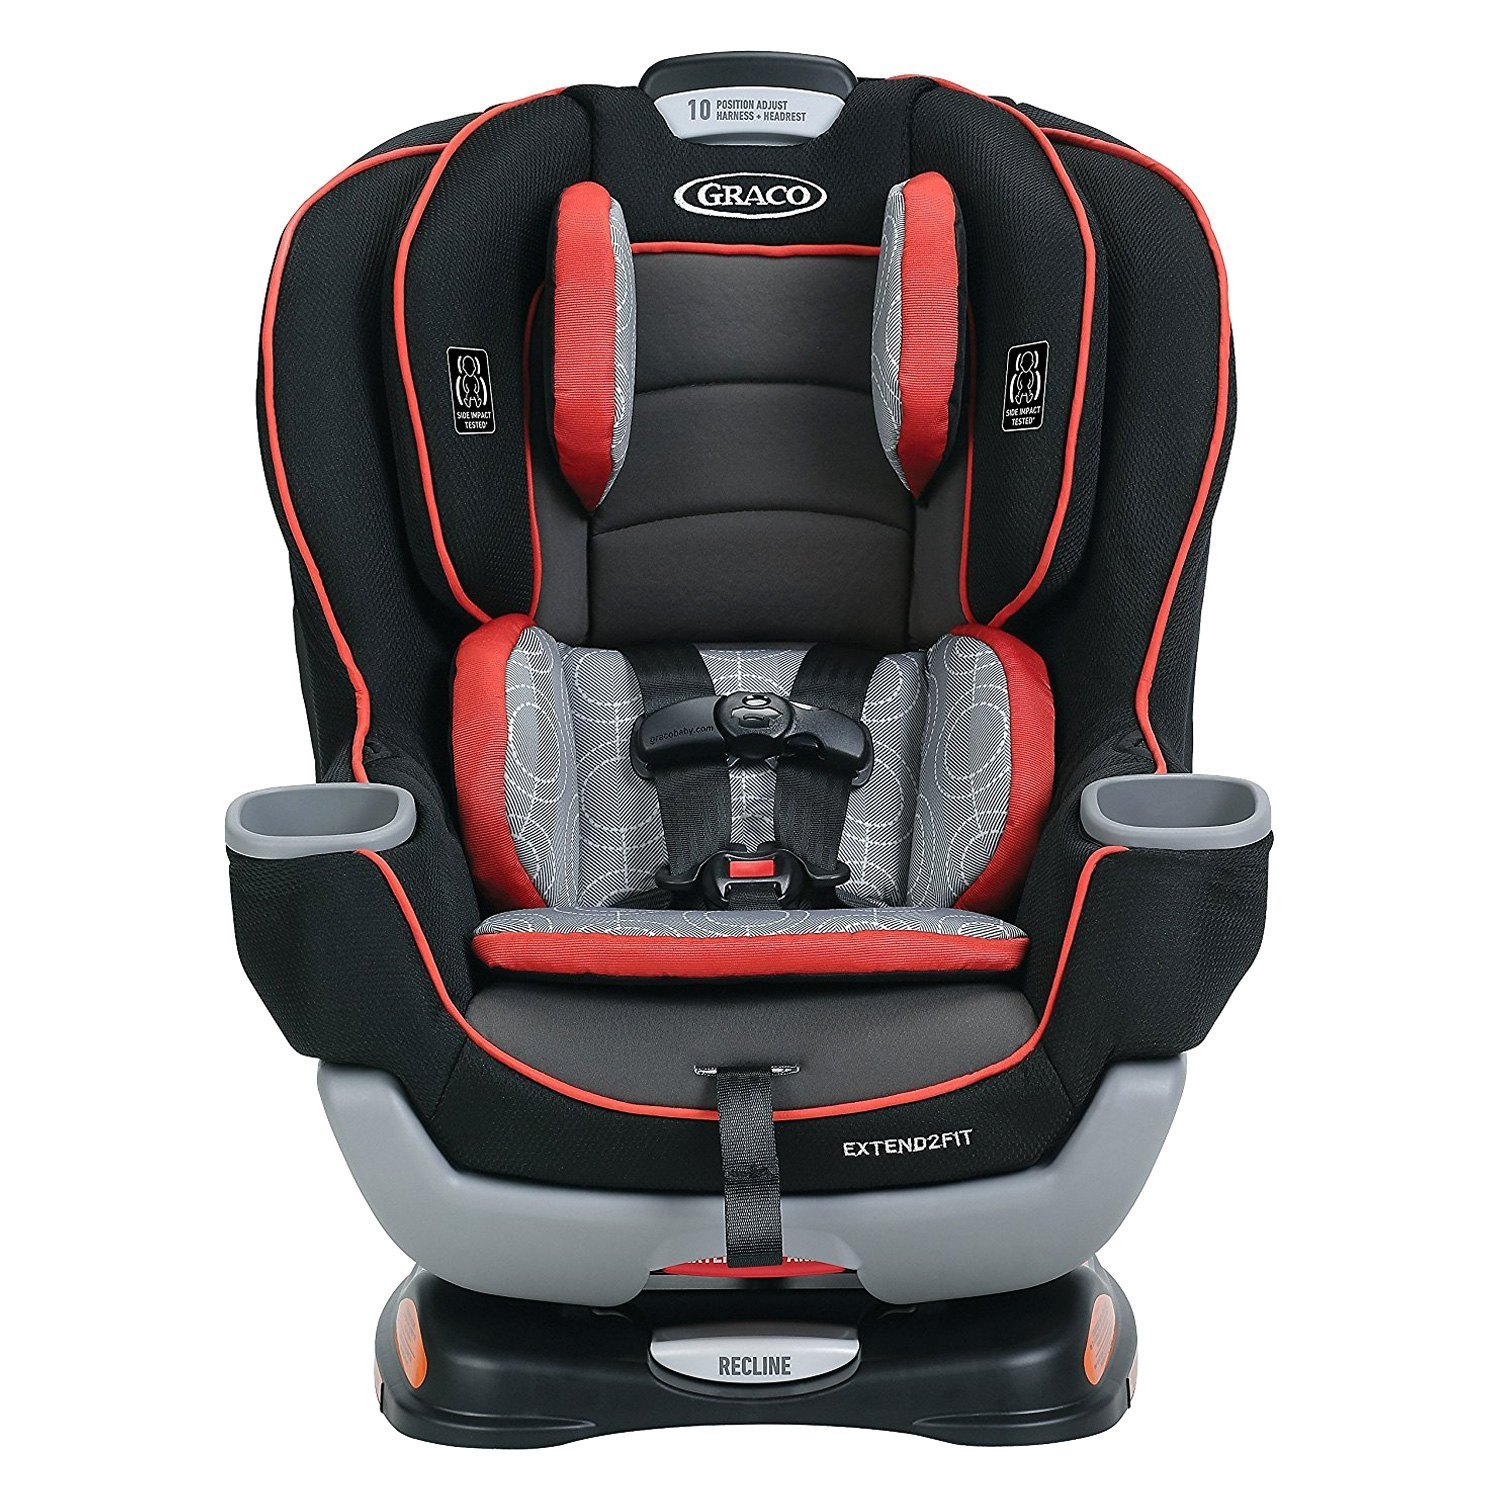 Graco Baby Number